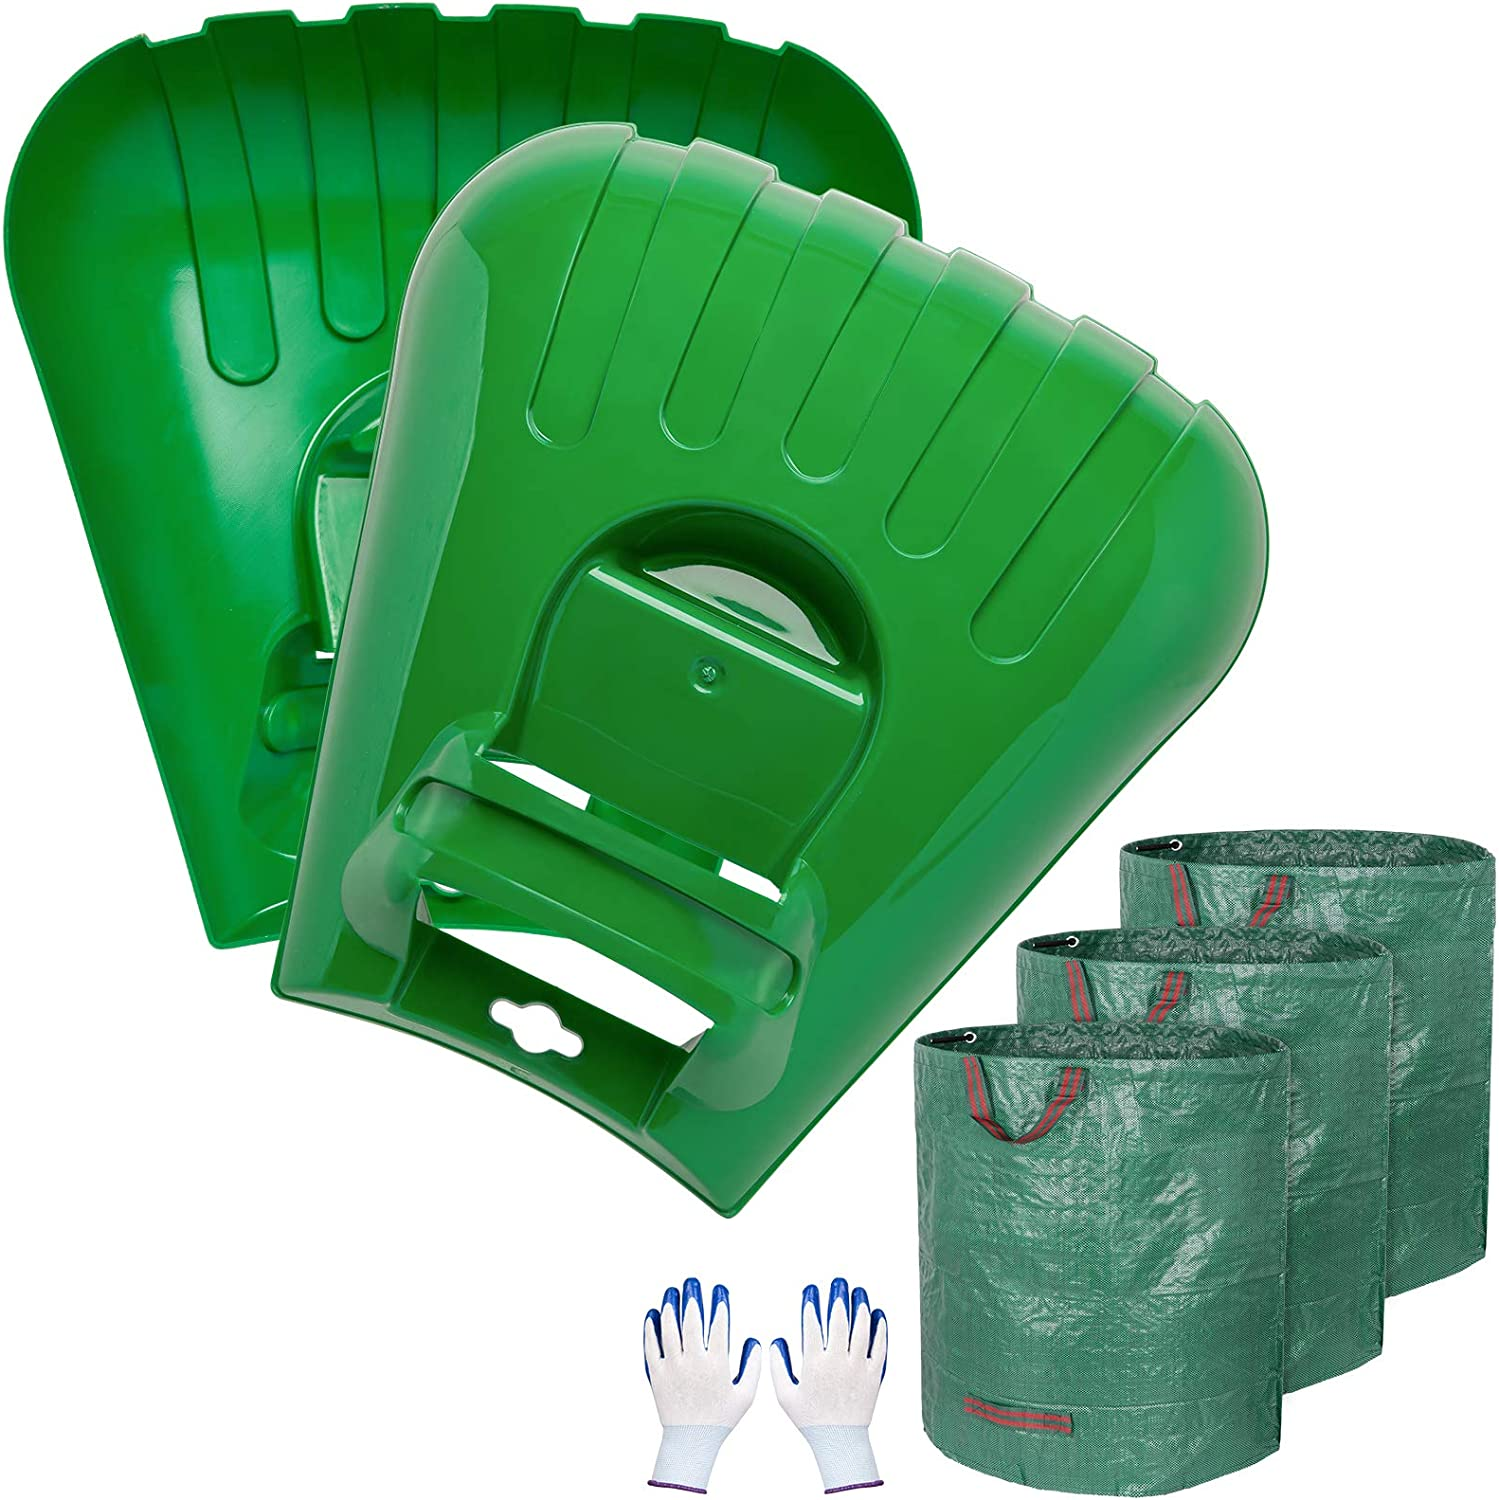 Decorlife 2-Pack Leaf Scoops In a popularity 3-Pack 72 Yard GA Clearance SALE Limited time Waste Comb Bags